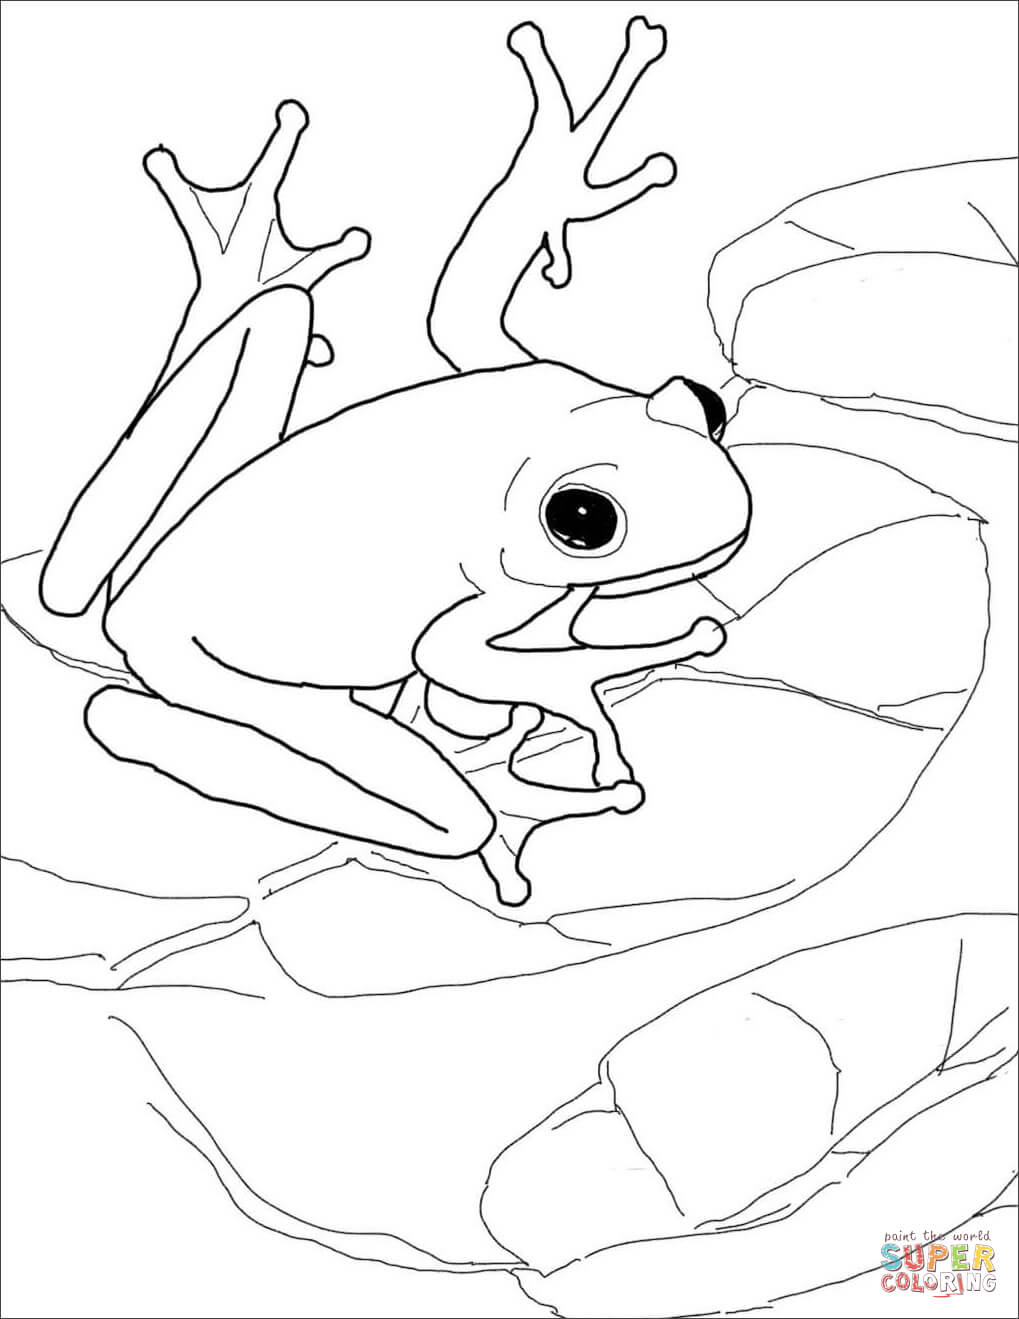 green tree frog coloring page green tree frog drawing at getdrawings free download page green coloring frog tree